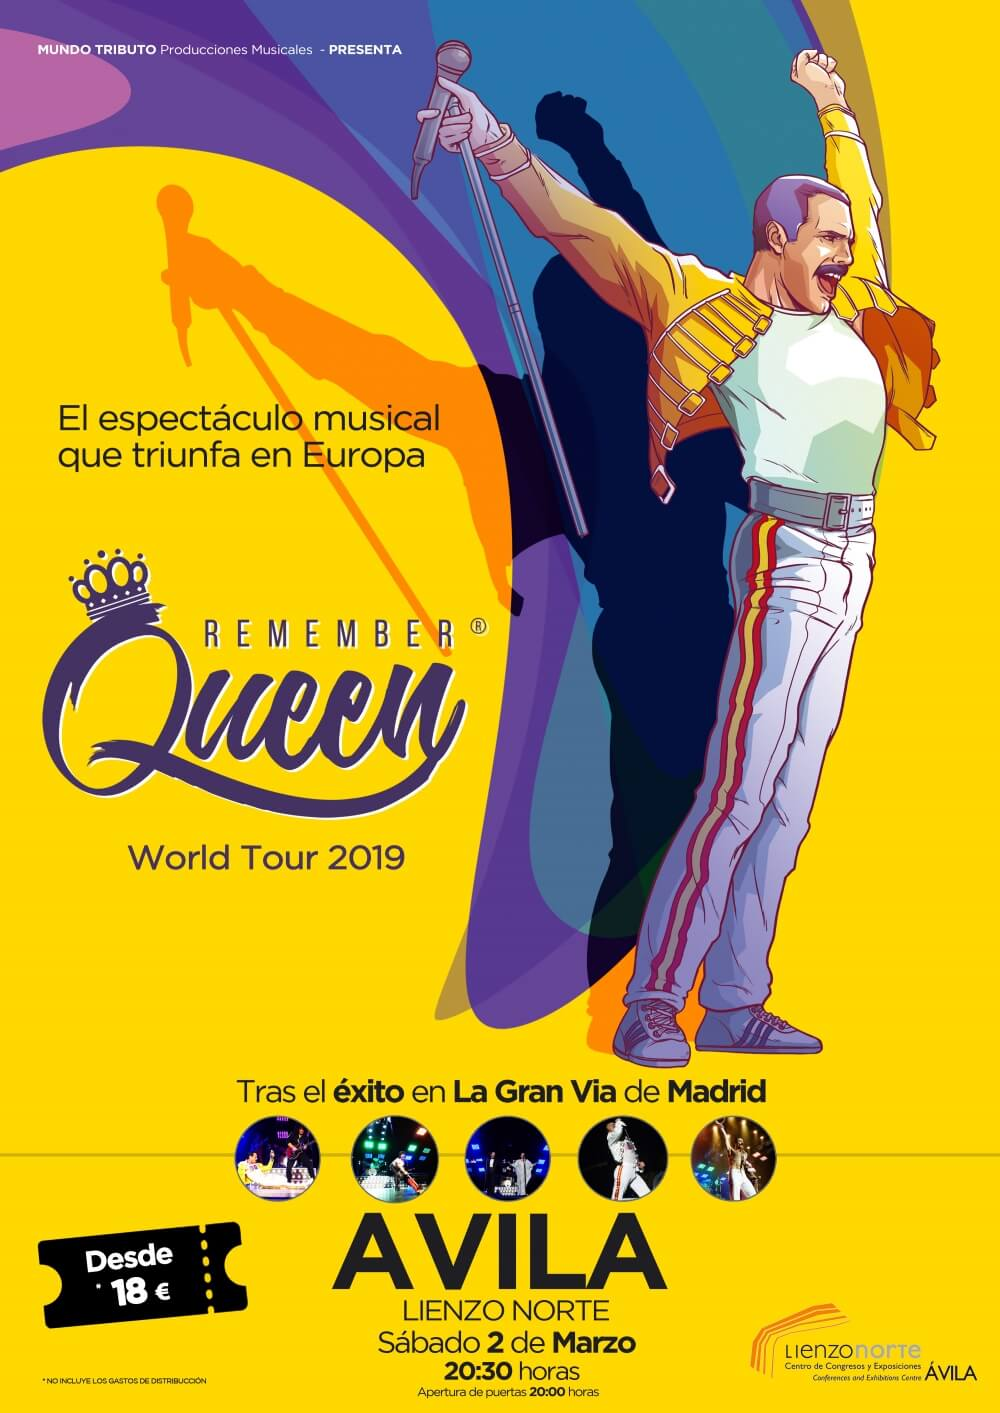 Remember Queen. World Tour